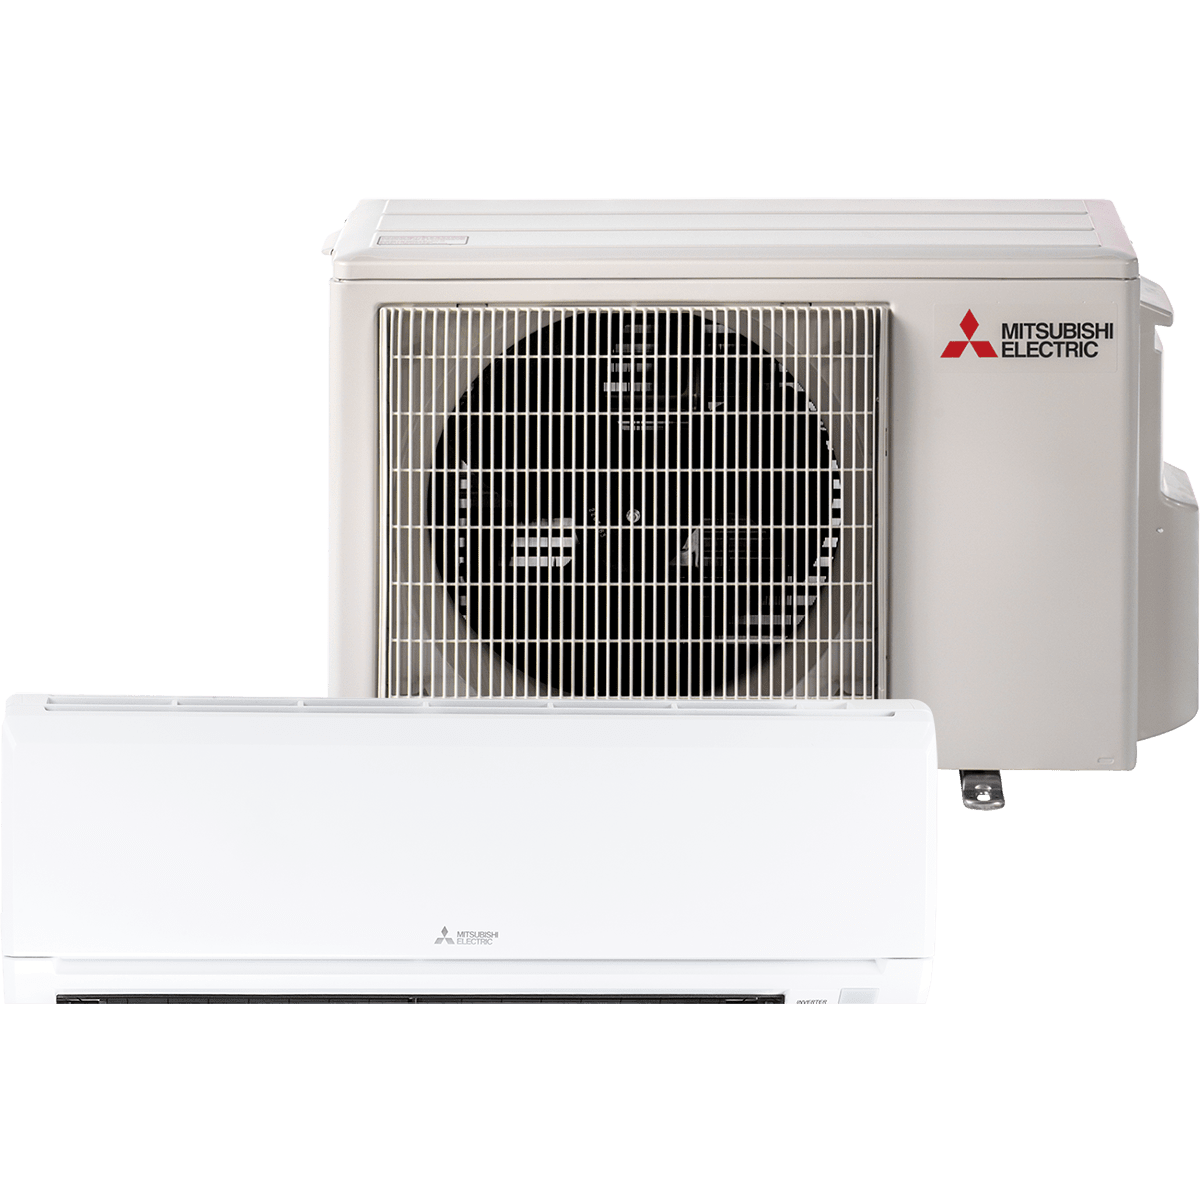 Mitsubishi MY GL12NA 12,000 BTU 23.6 SEER Mini Split Air Conditioner